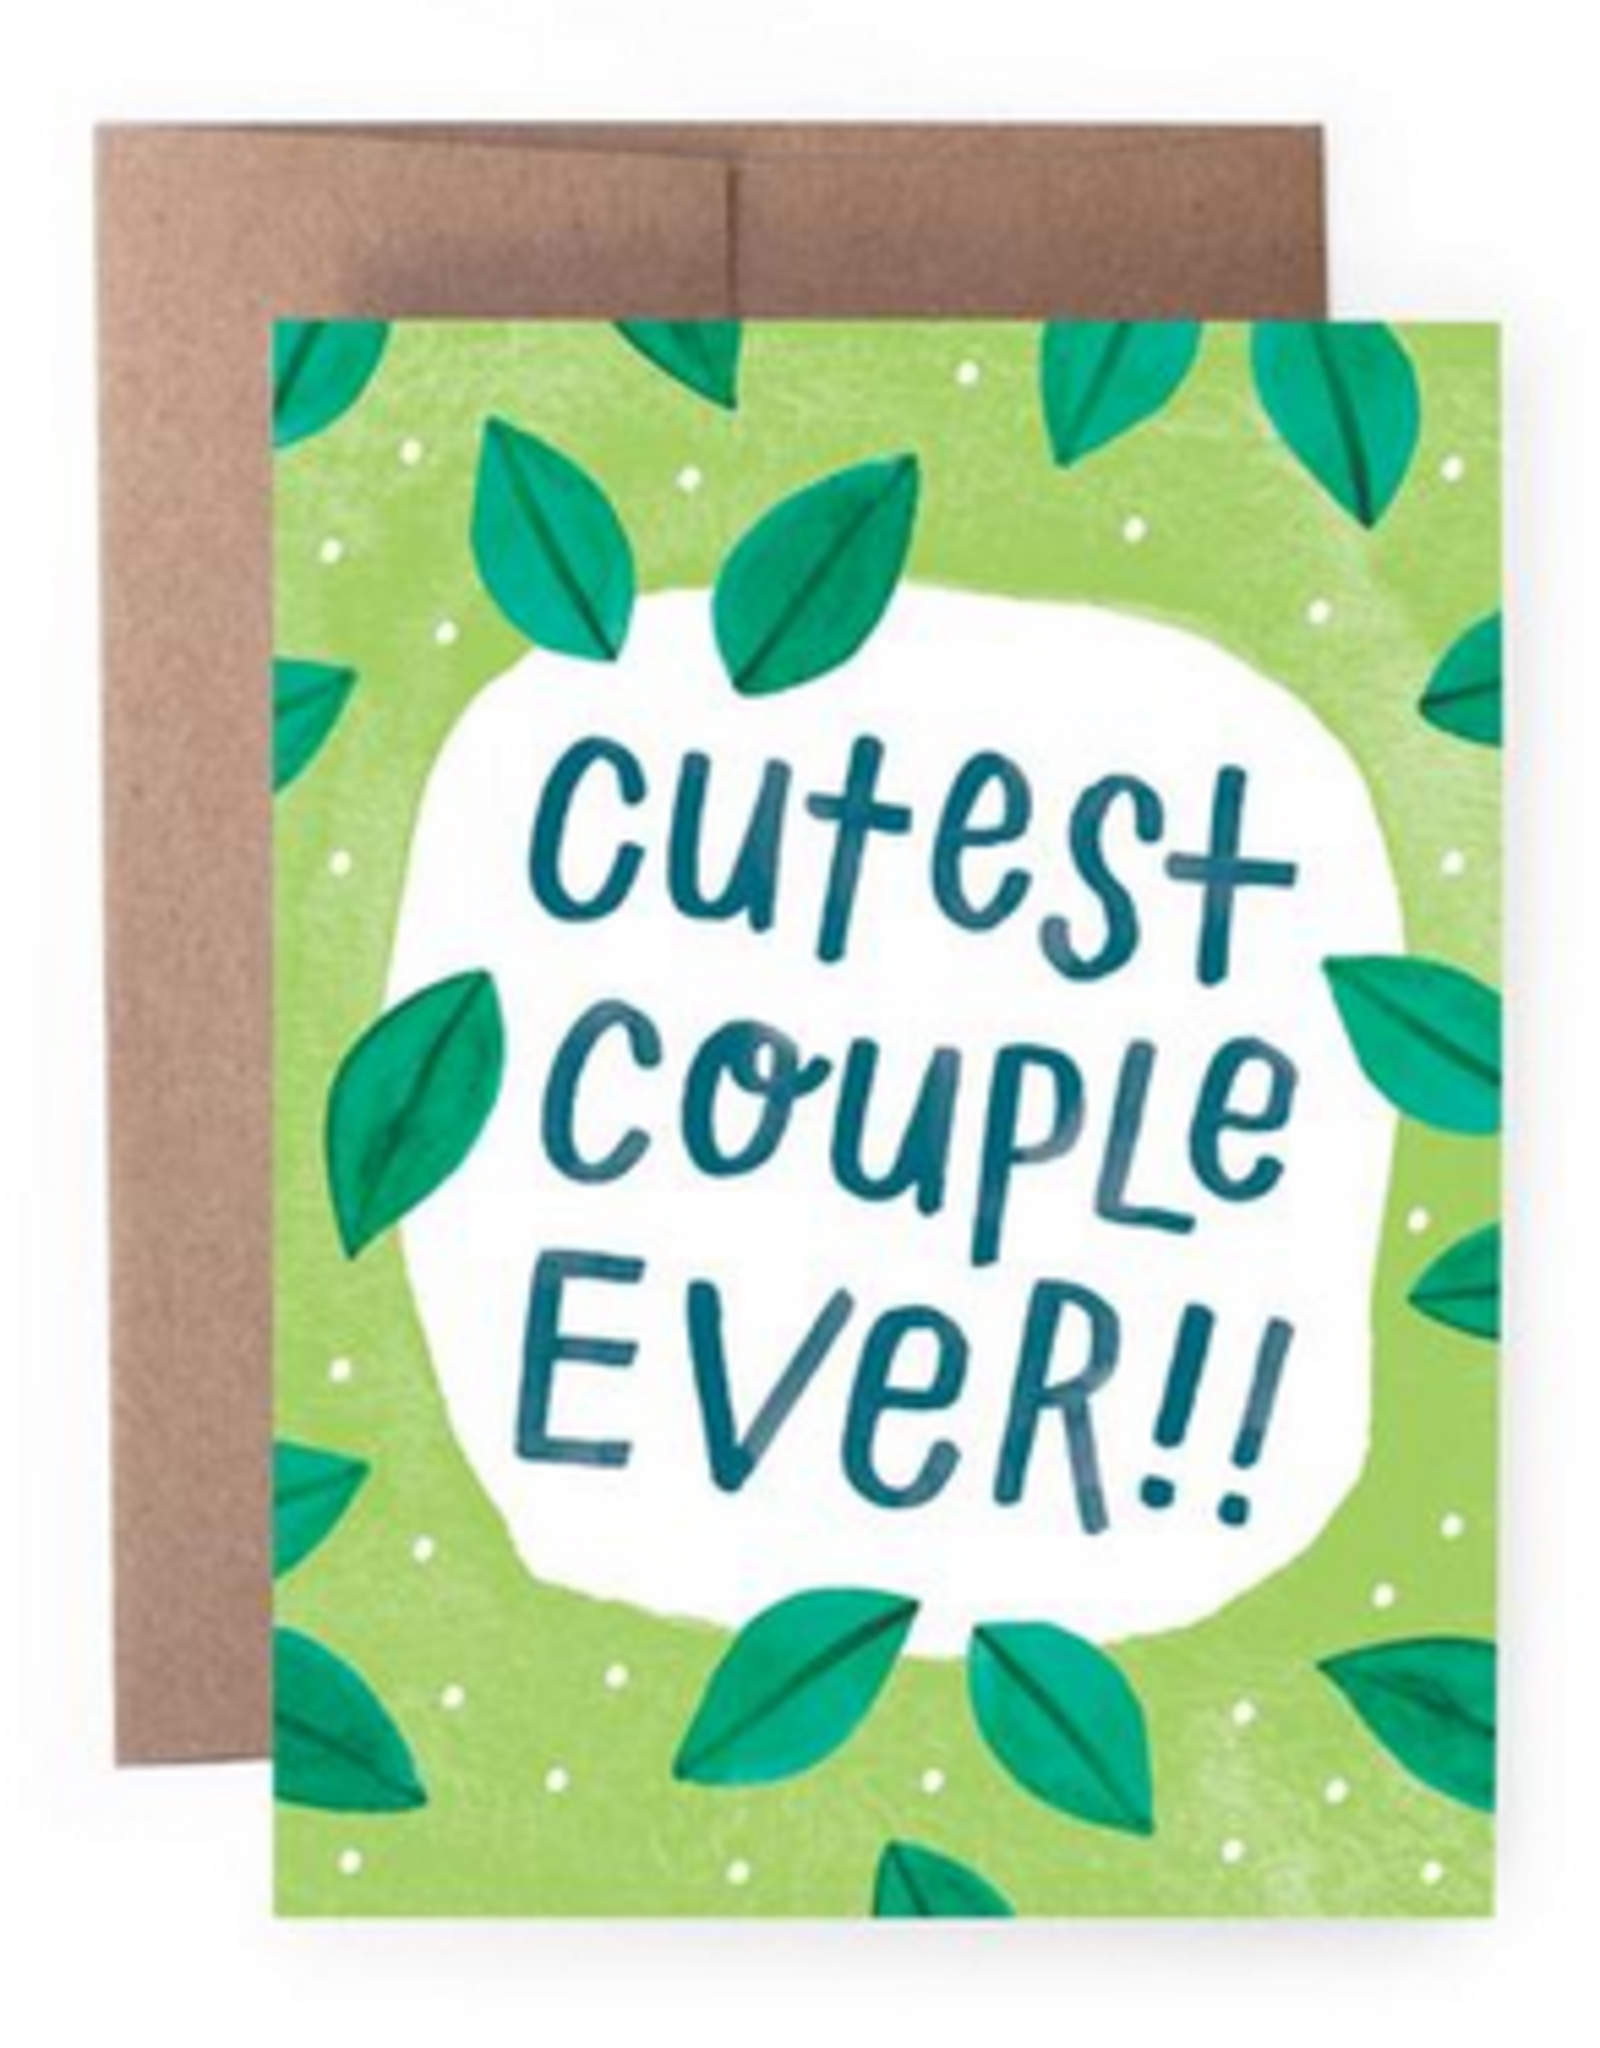 Cutest Couple Ever!! (leaves) Greeting Card